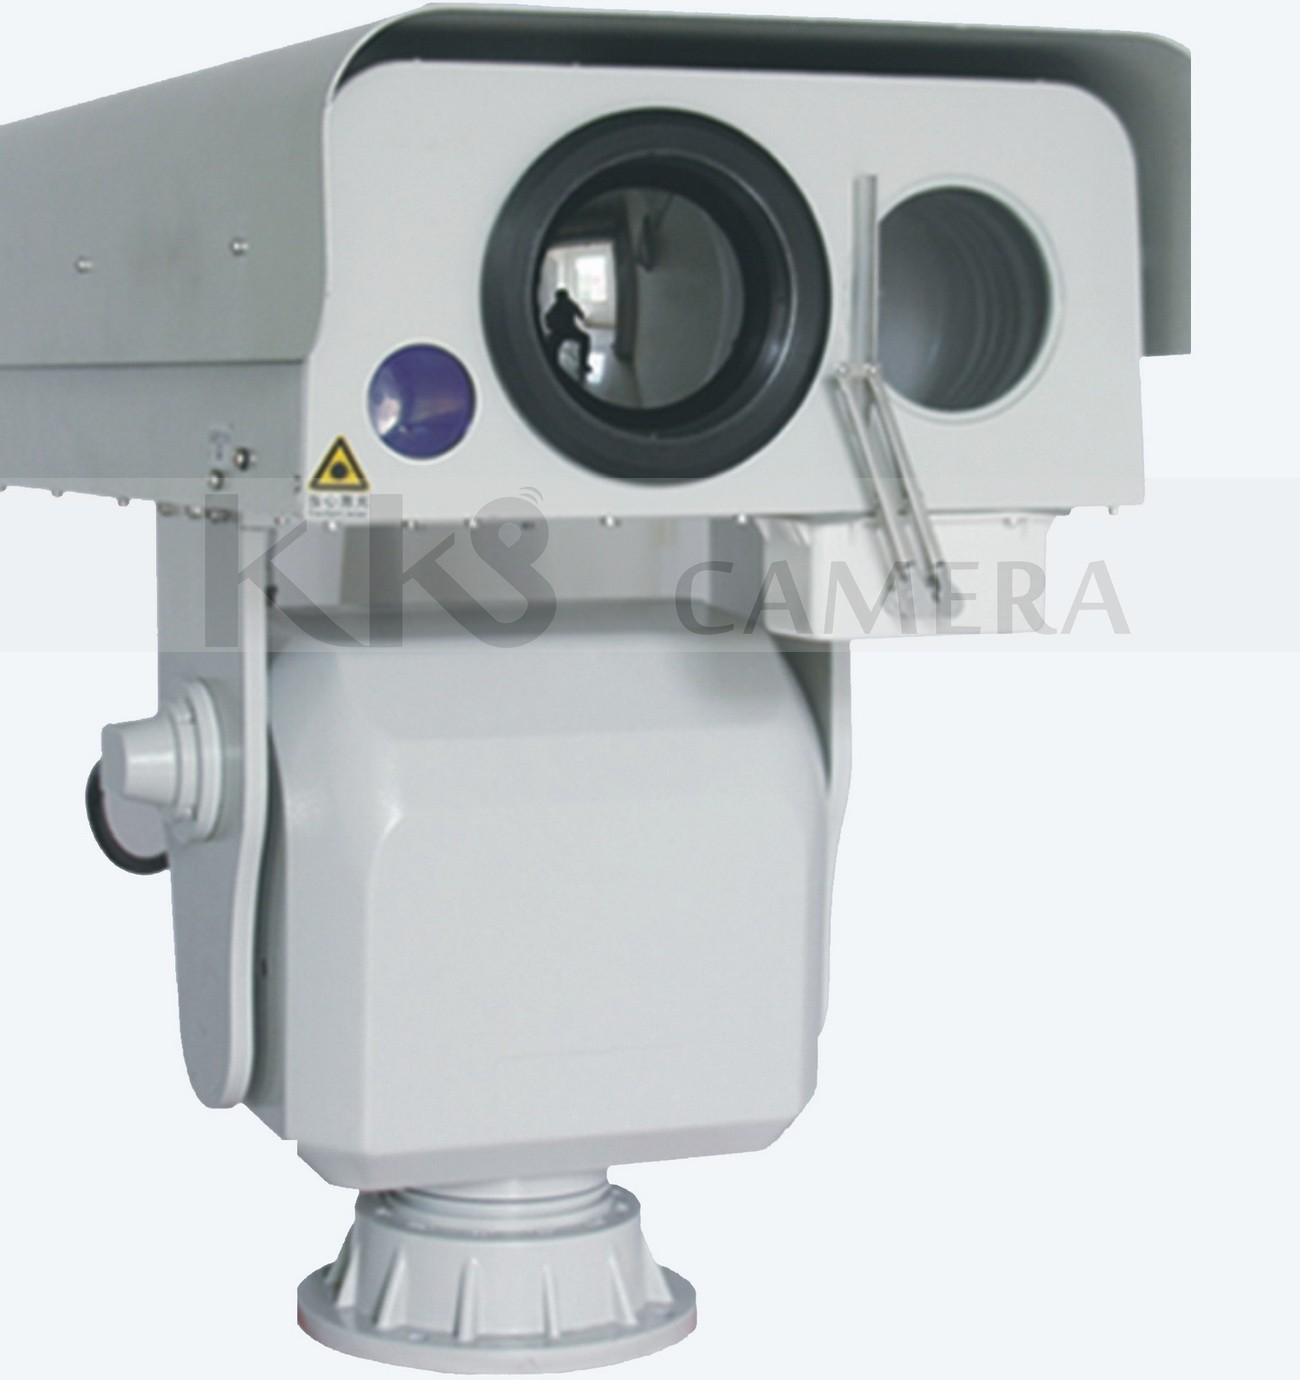 Laser & Optical & Thermal  All-in-one Camera